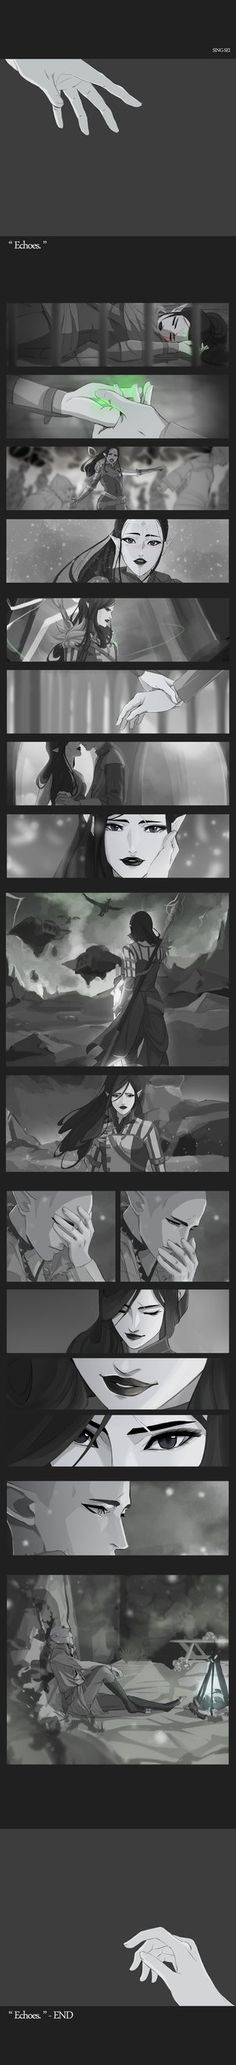 Dragon Age: Inquisition, Seth and Solas dancing at the Winter Palace Post on Tumblr:sing-sei.tumblr.com/post/10968…